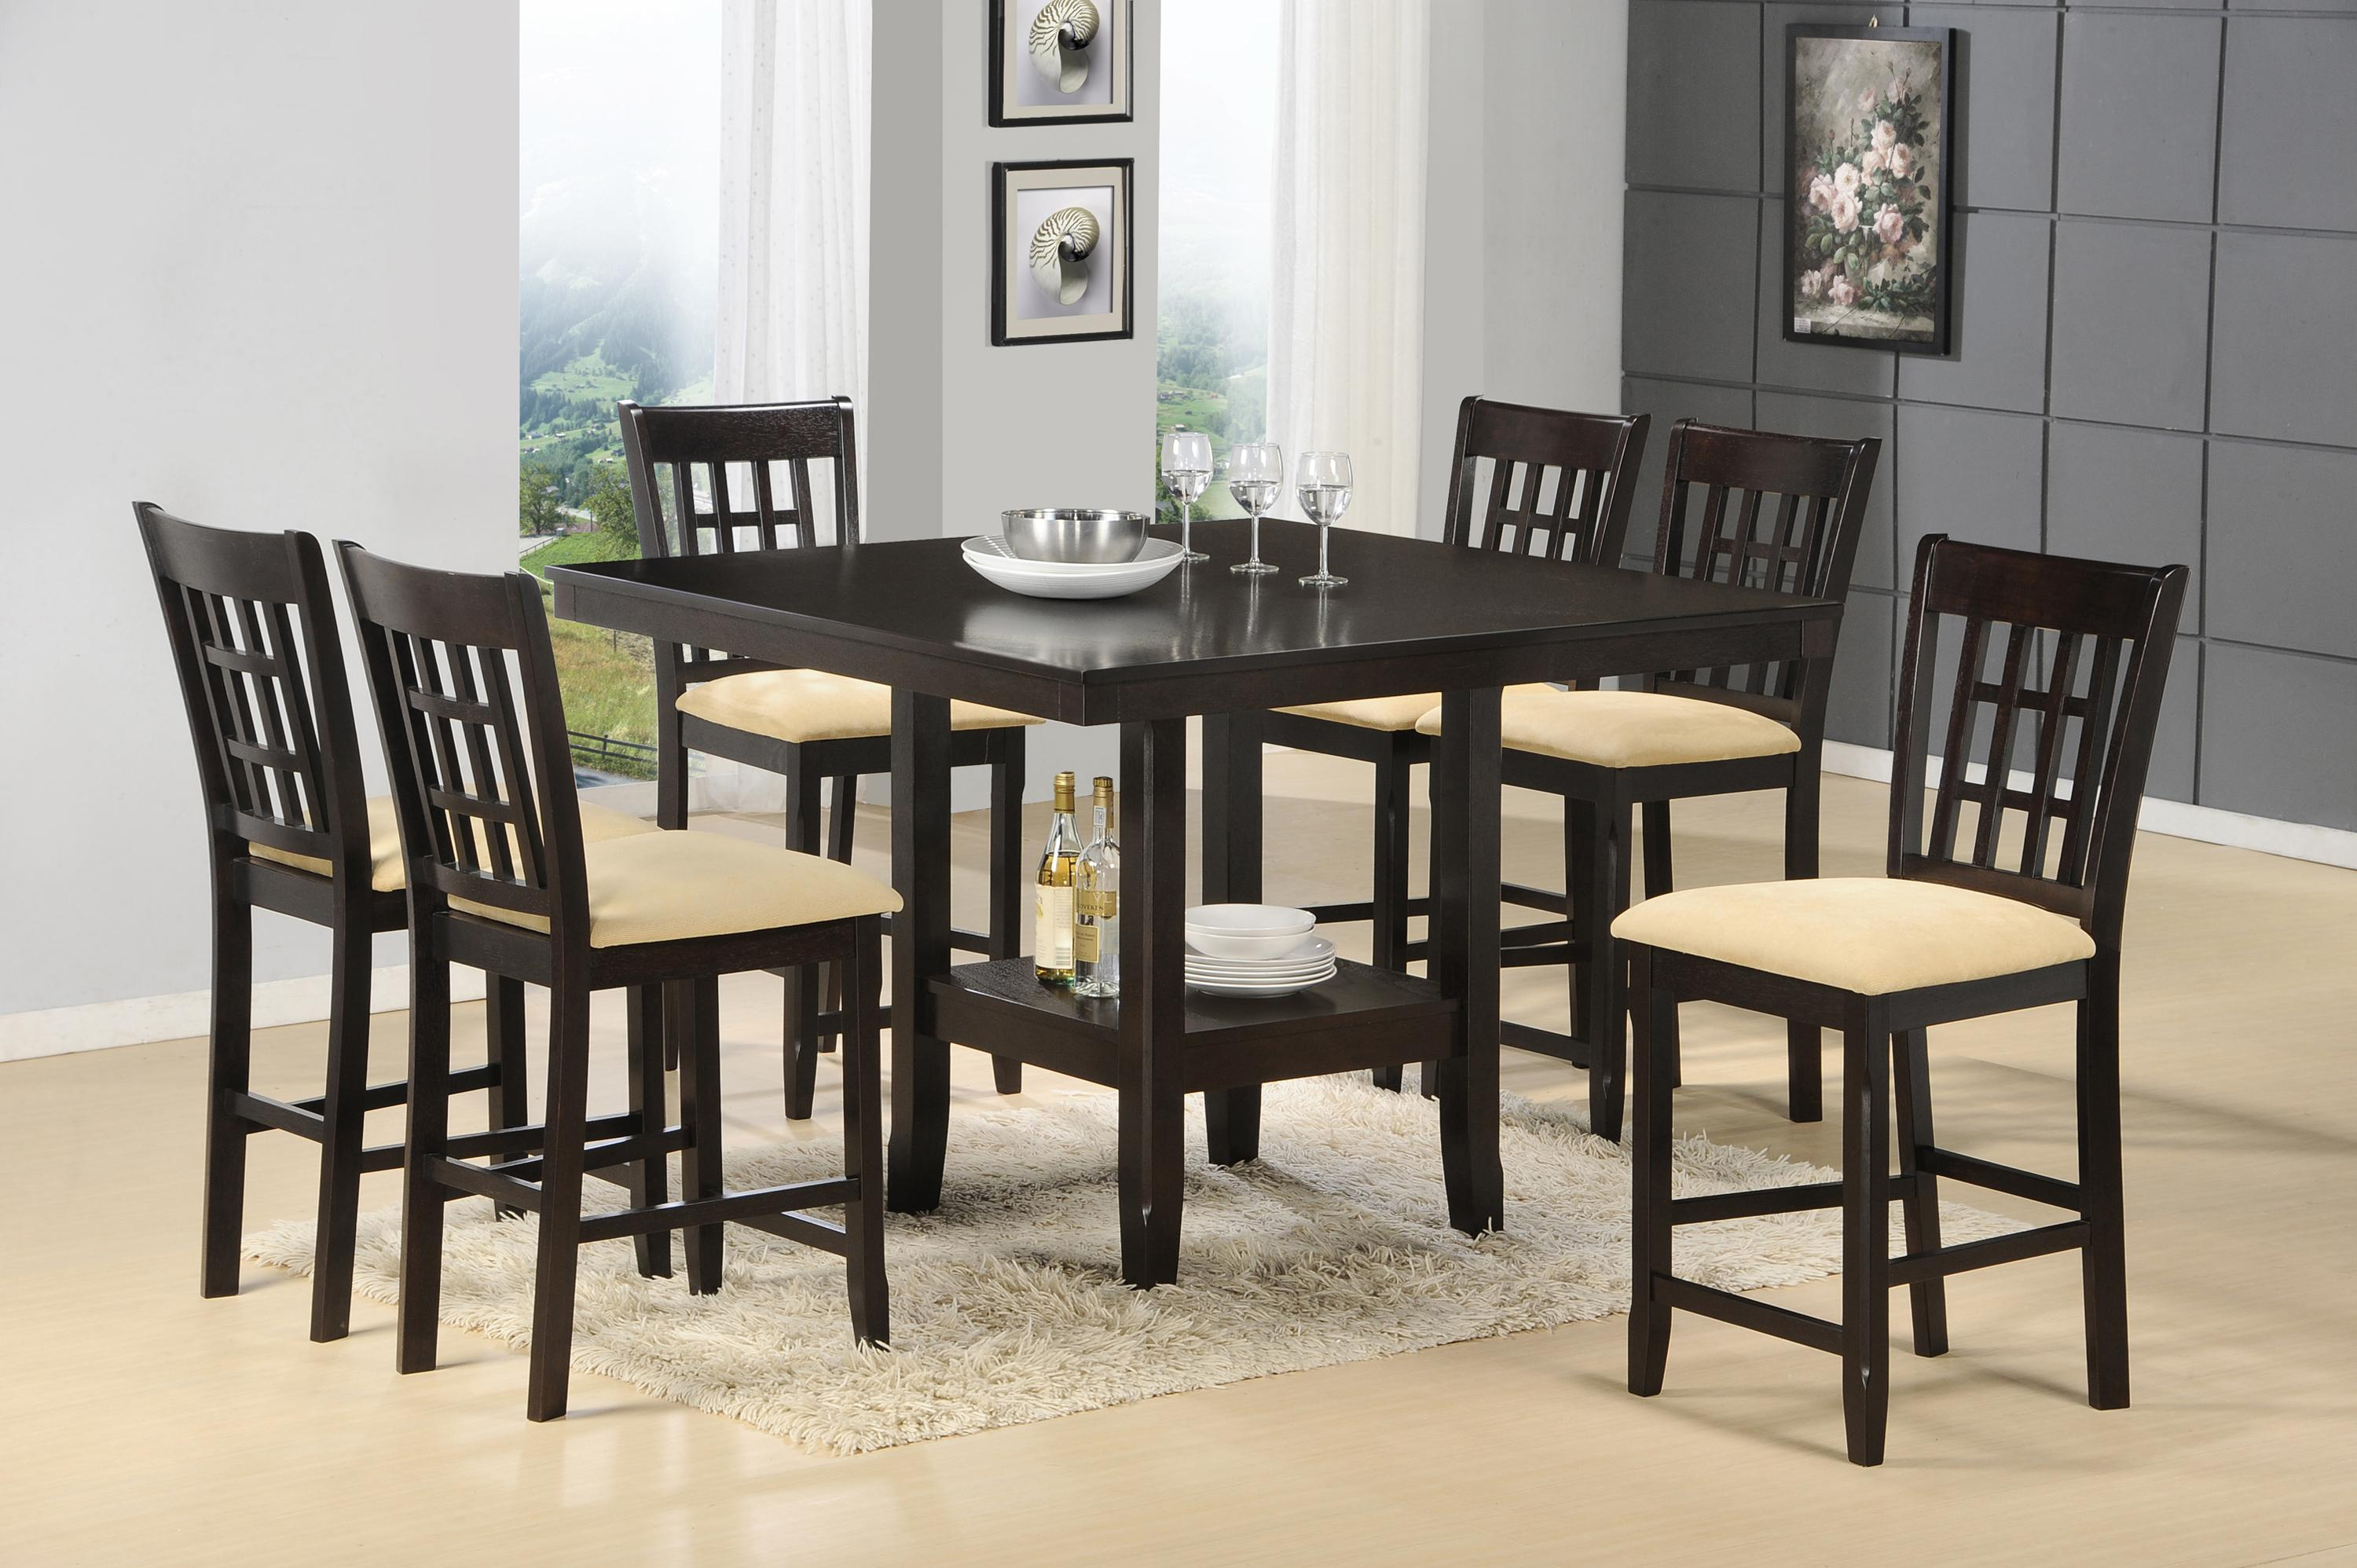 Hillsdale Tabacon Counter Height Gathering Table With Wine Rack   Wayside  Furniture   Pub Table